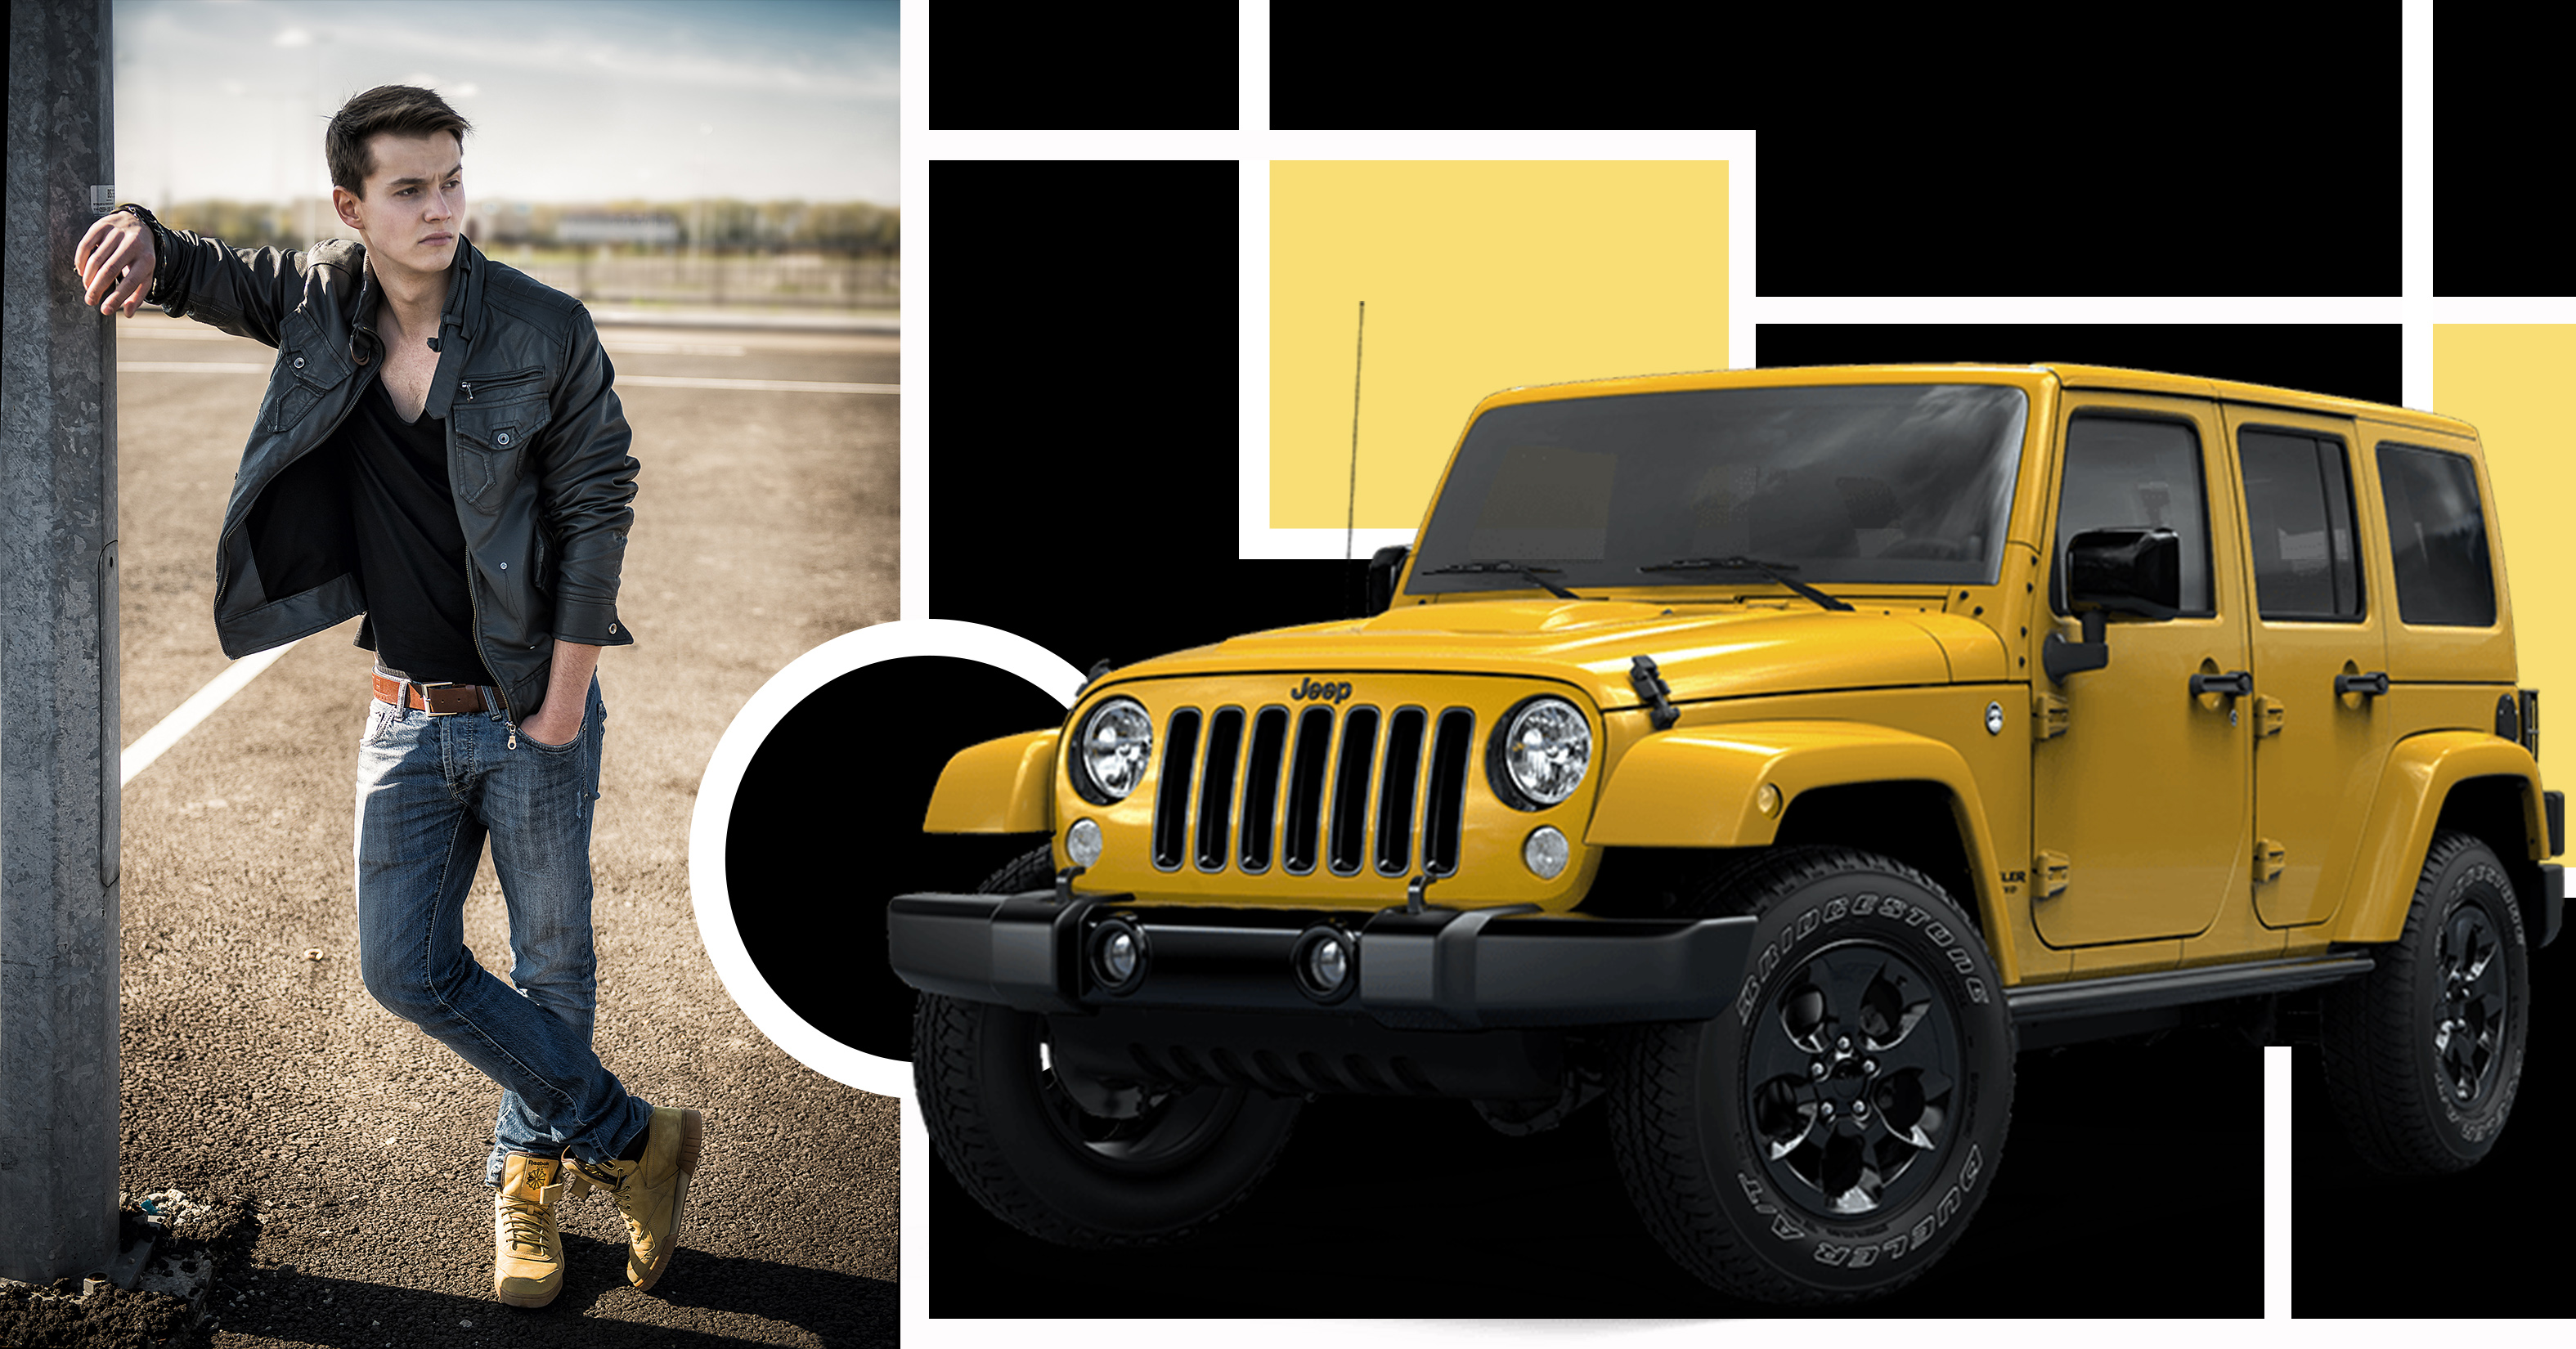 Grunge_Jeep_Wrangler_Unlimited_4x4_Fashion_Style